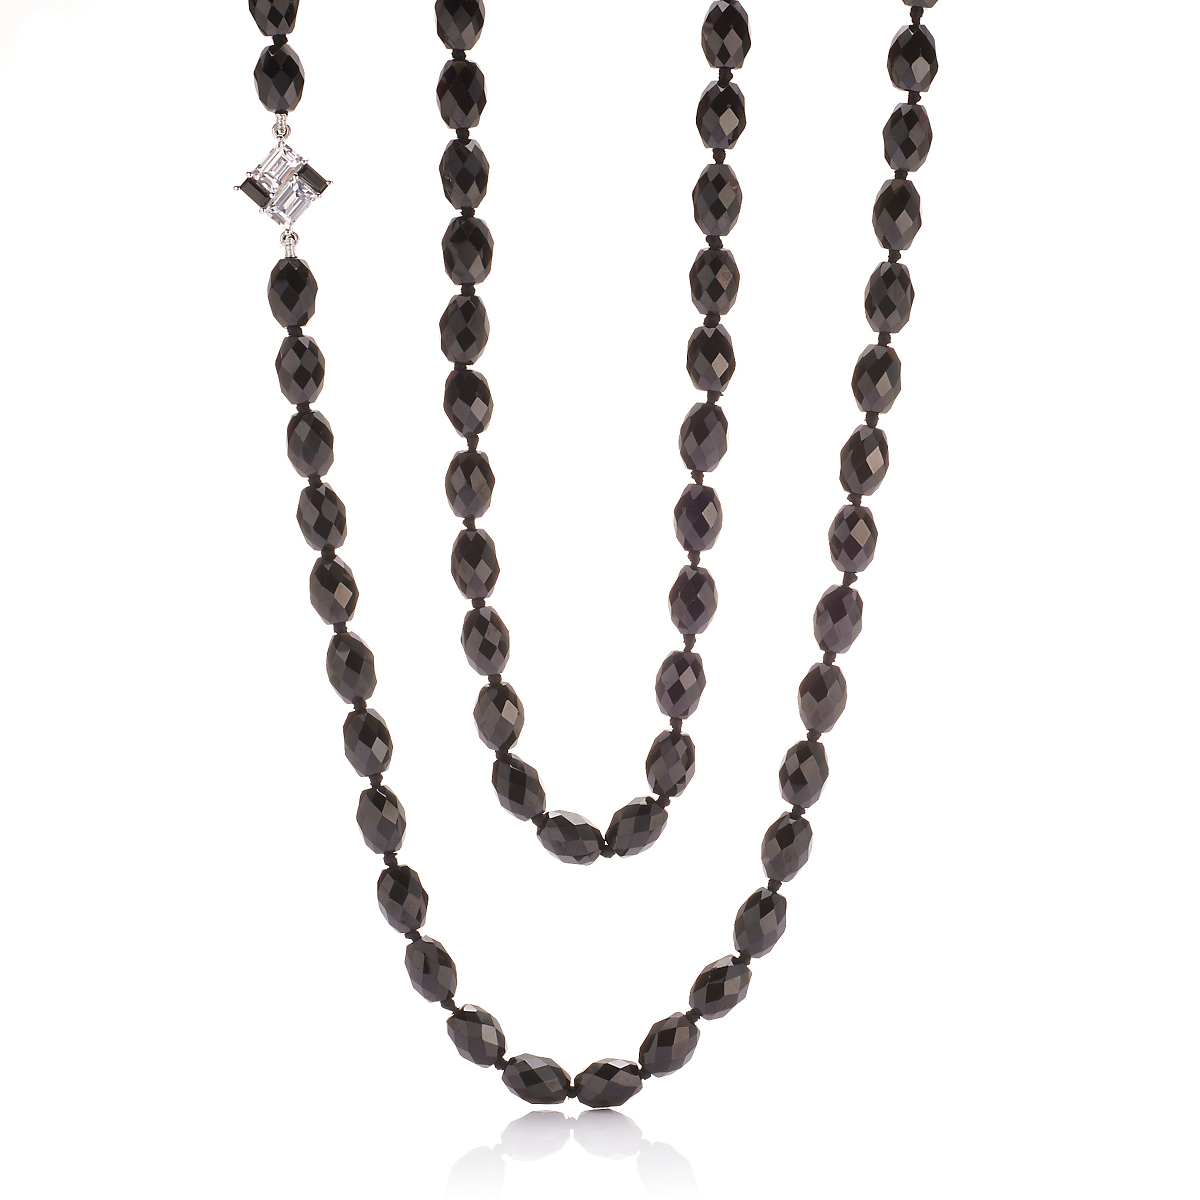 Gump's Spinel & Mosaic Element Rope Necklace